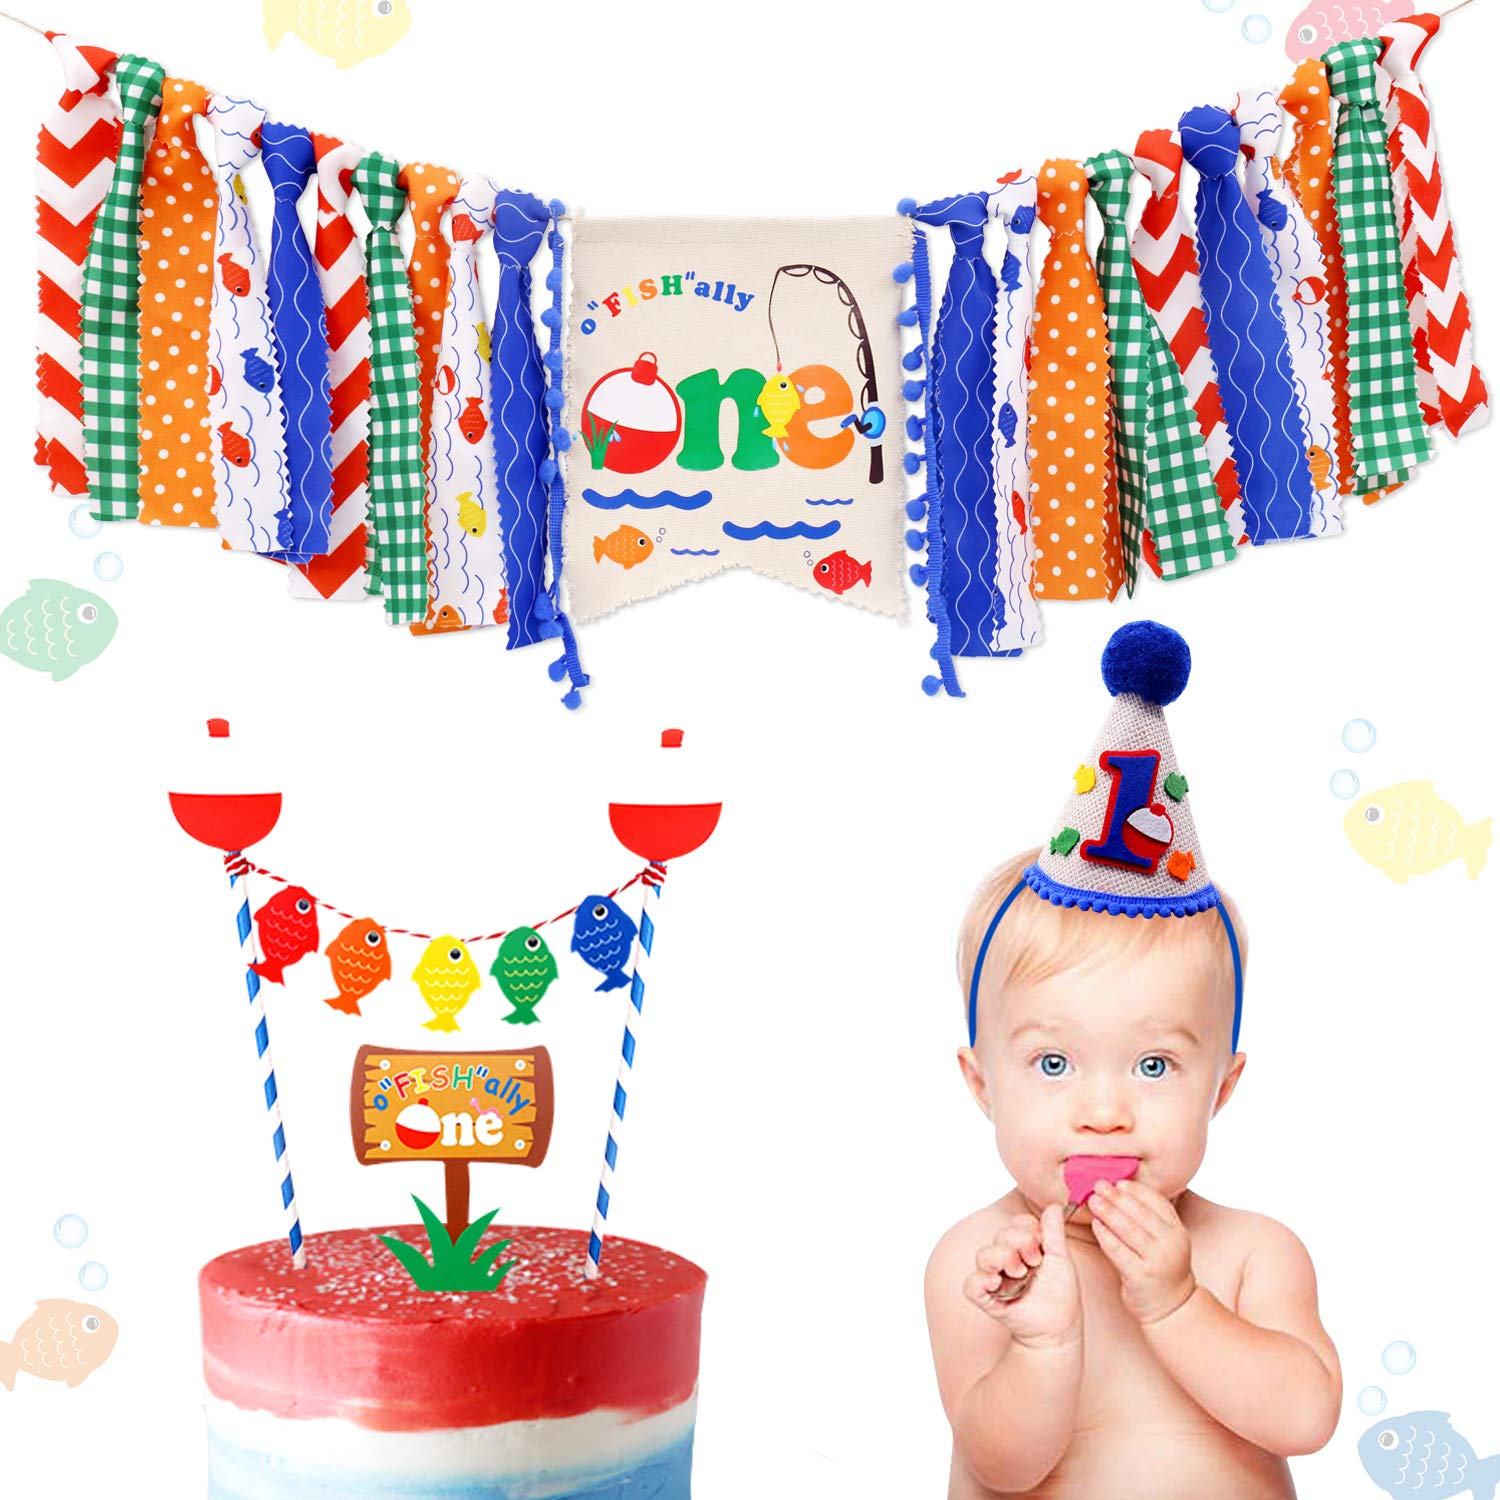 3-In-1 Gone Fishing First Birthday Party Decorations- Little Fisherman Highchair Banner The Big One Hat O''FISH''ALLY ONE Cake Topper Bobber Baby Cake Smash Milestone Photo Booth Props Supplies